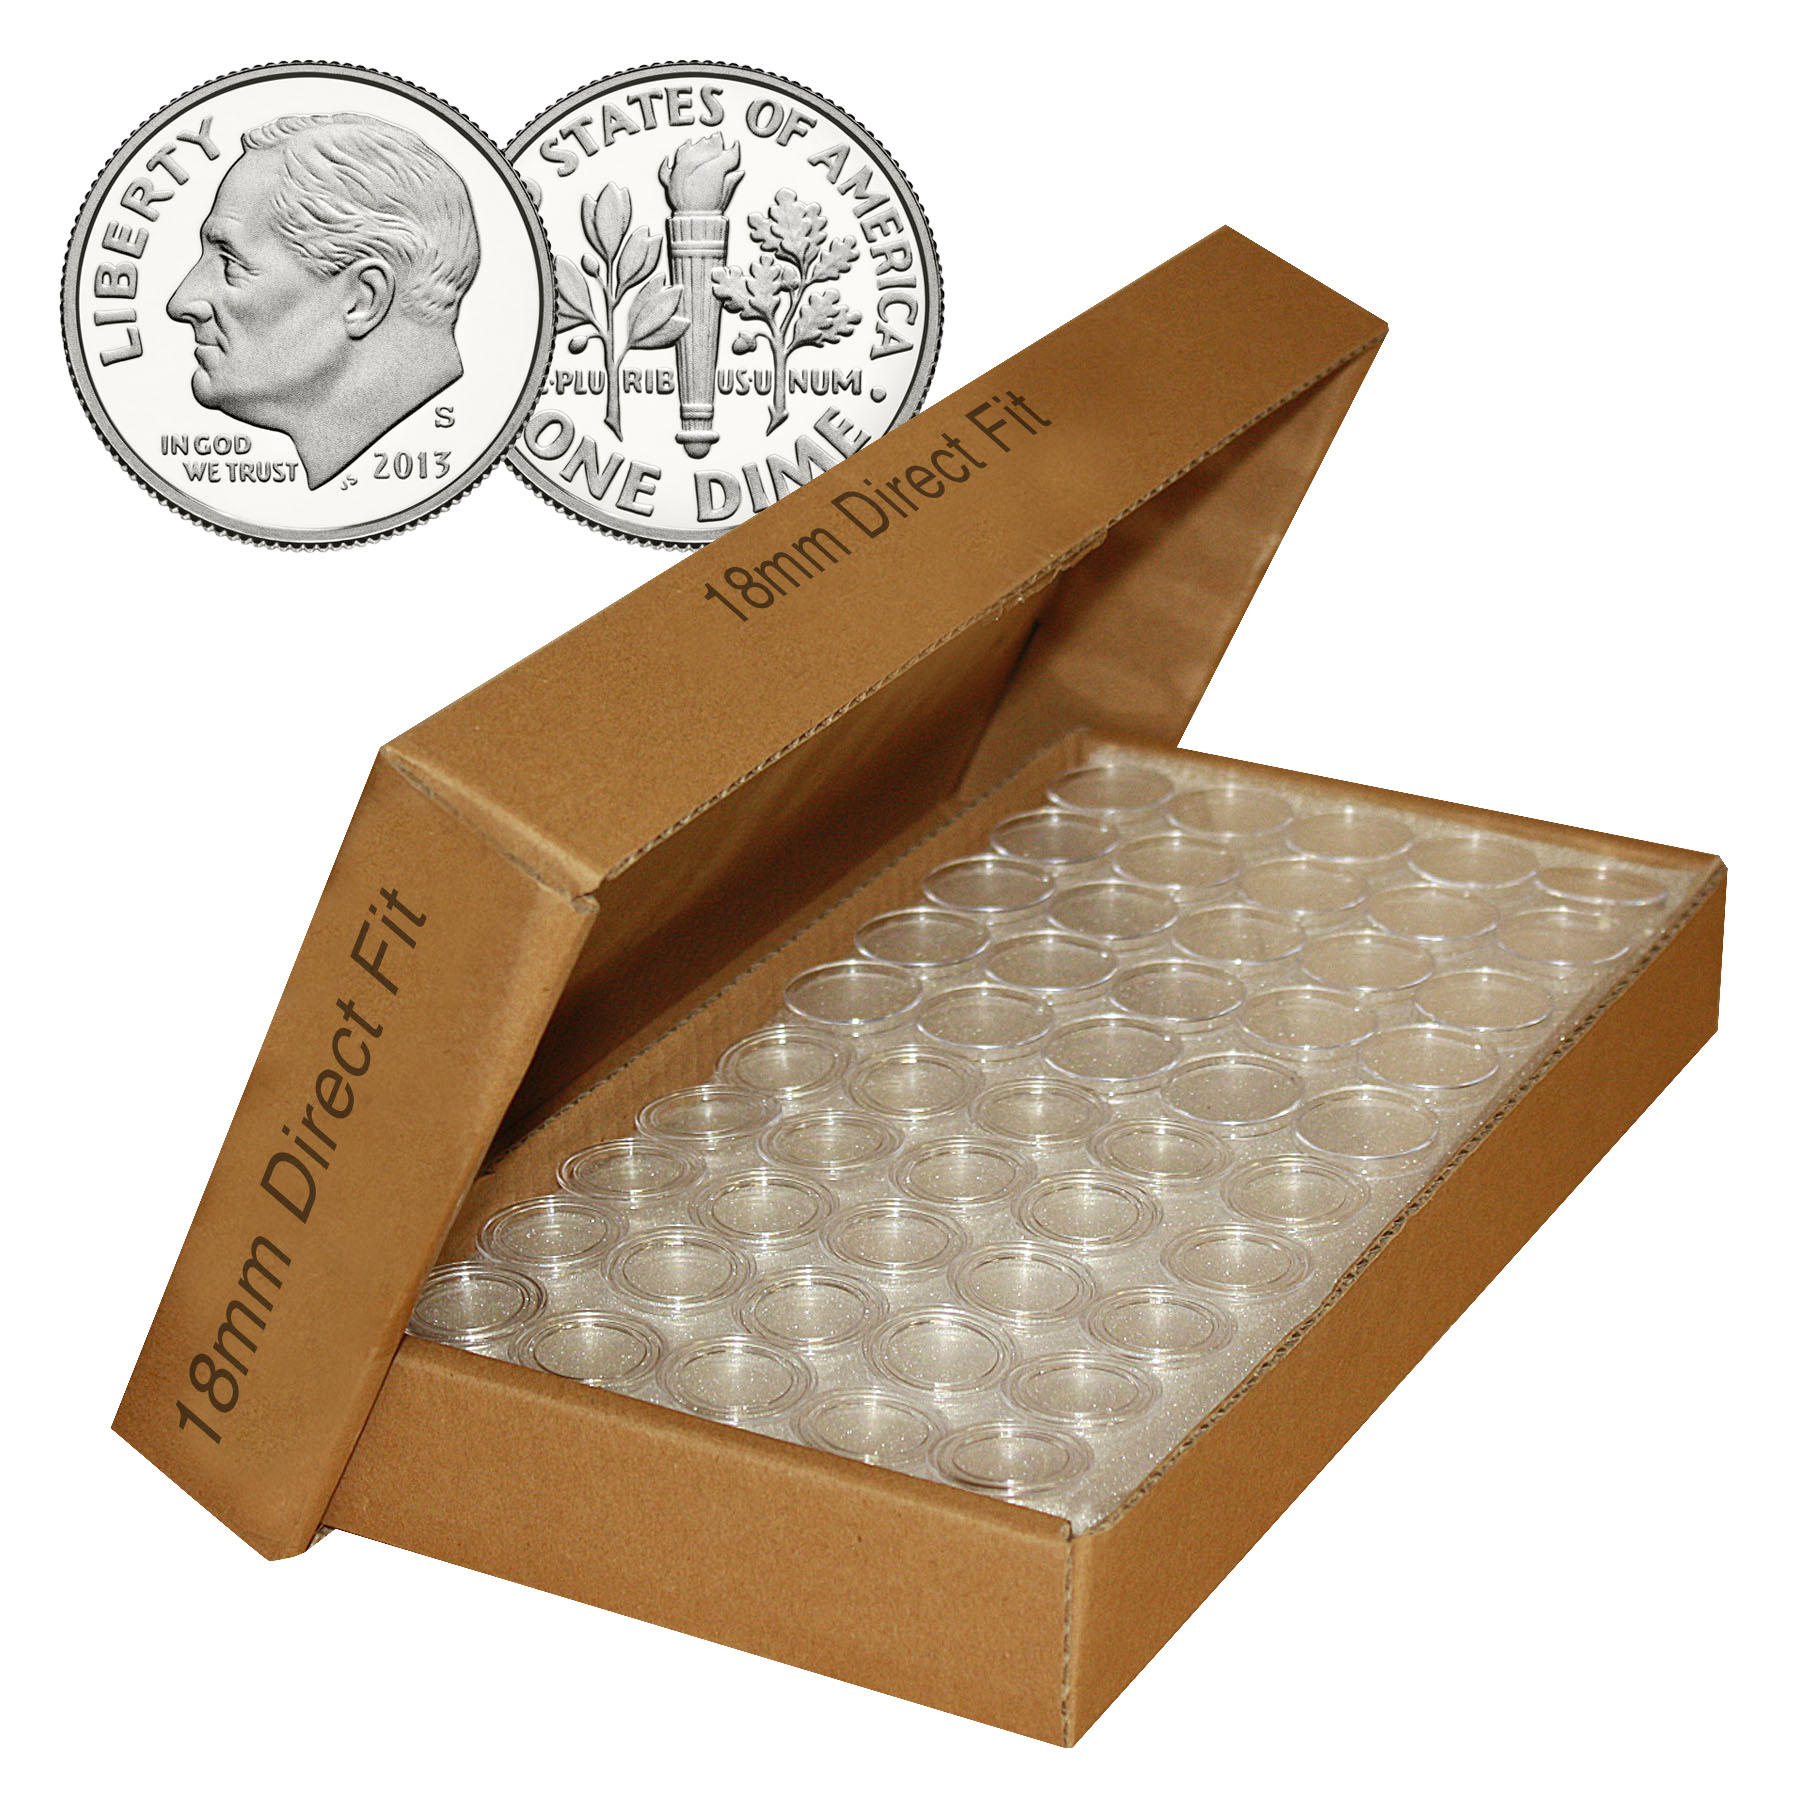 DIME Direct-Fit Airtight 18mm Coin Capsule Holders For DIMES (QTY: 25)